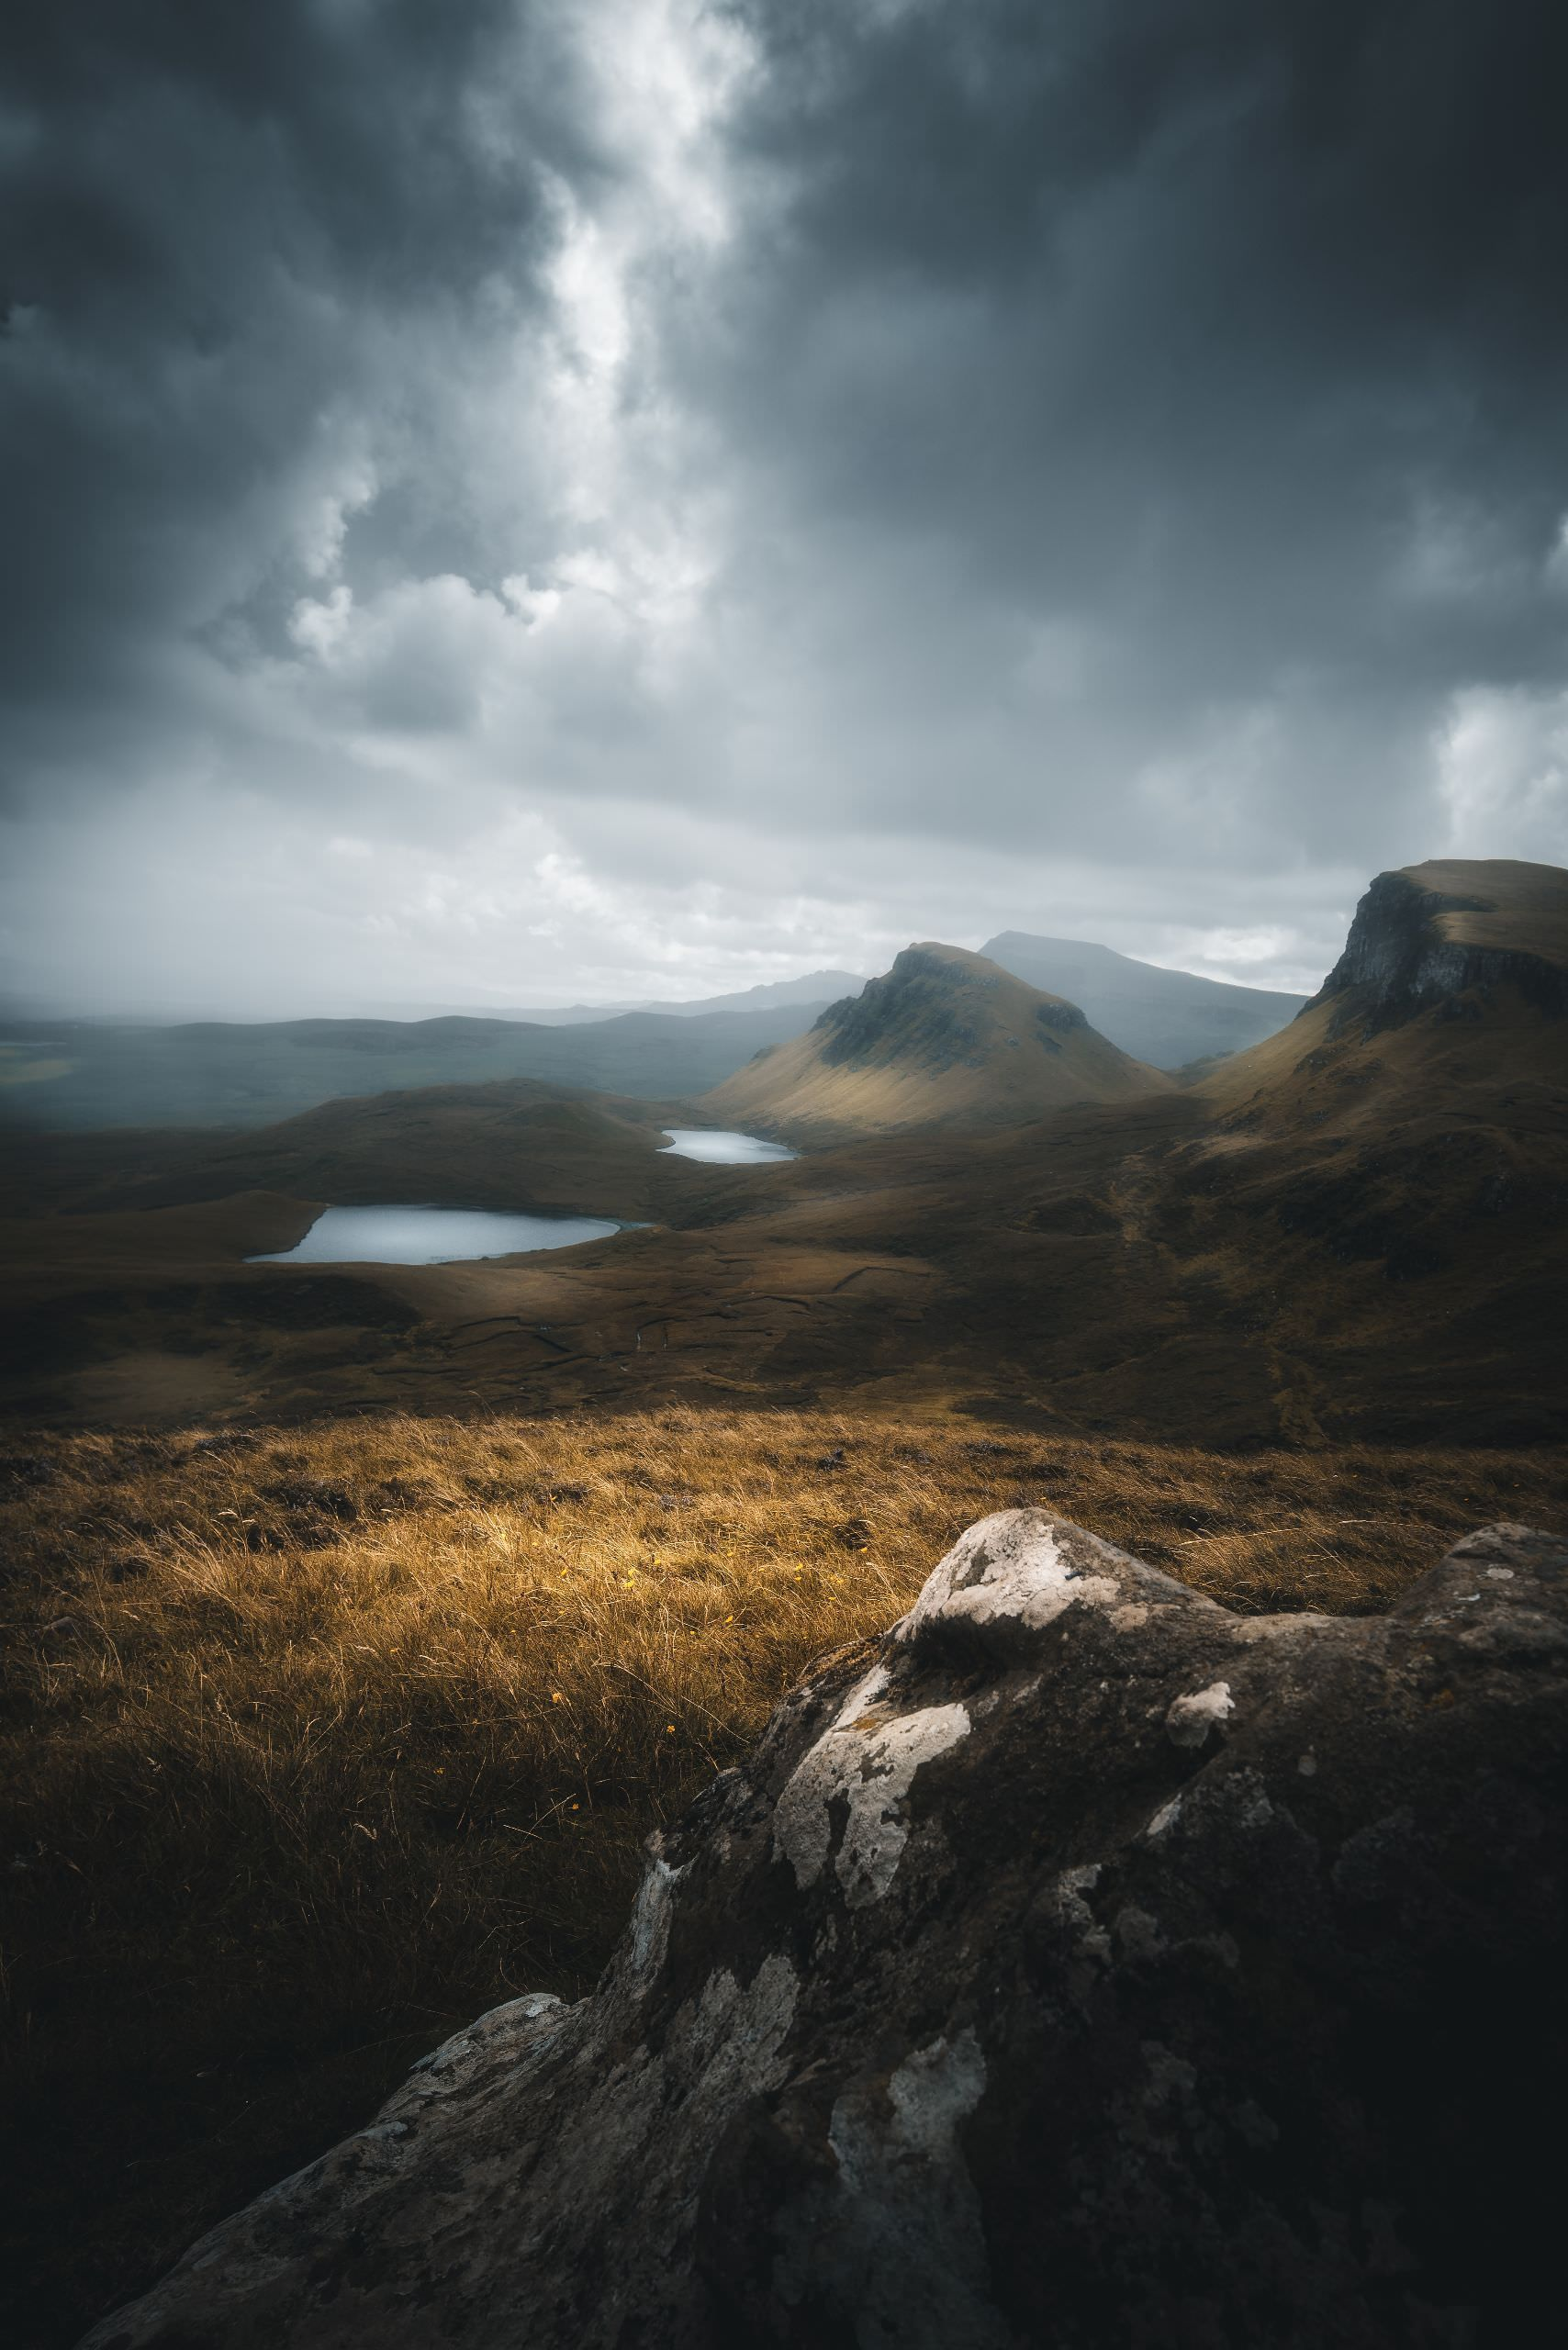 Nature Beautiful Scenery Quiraing Scotland Oc 4016x6016 Landscape Photography Nature Landscape Photography Scenery Photography